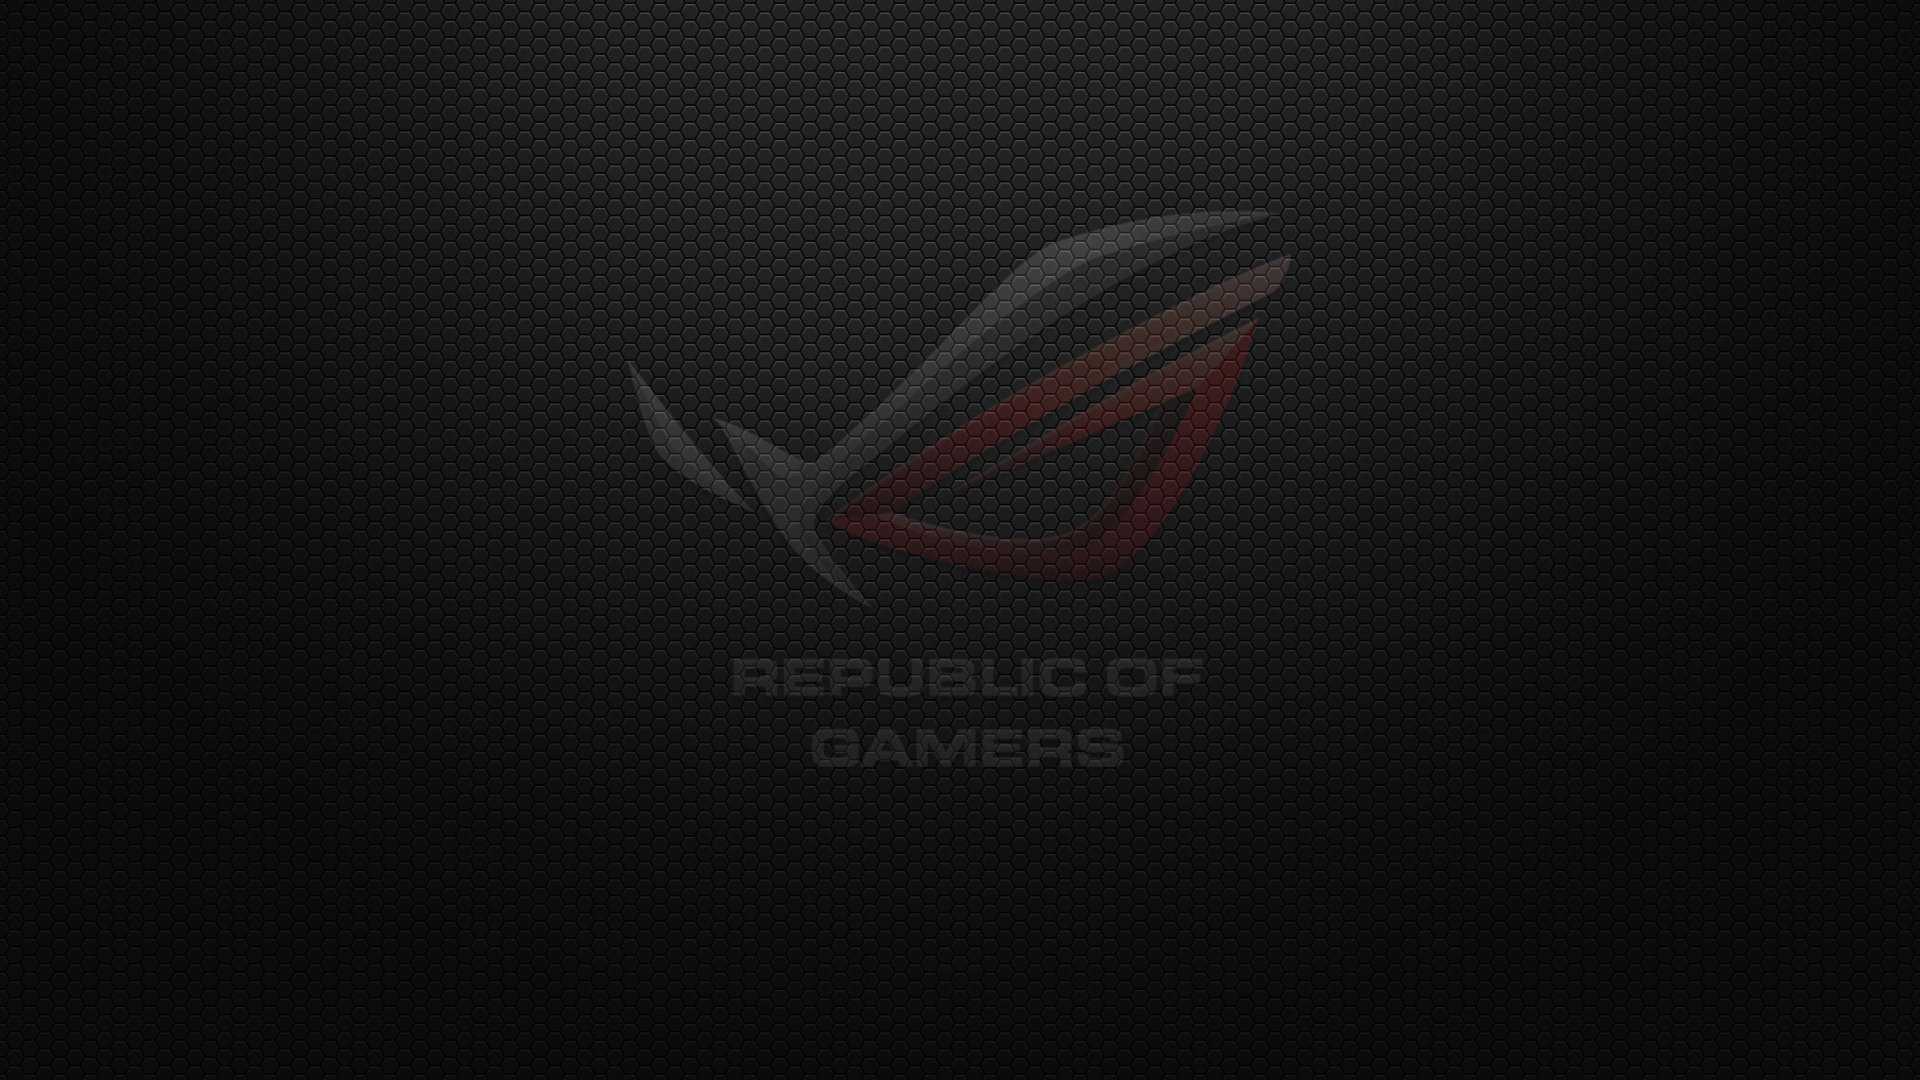 Related Pictures Rog Asus Wallpaper Wallpapers Gaming 1920x1080